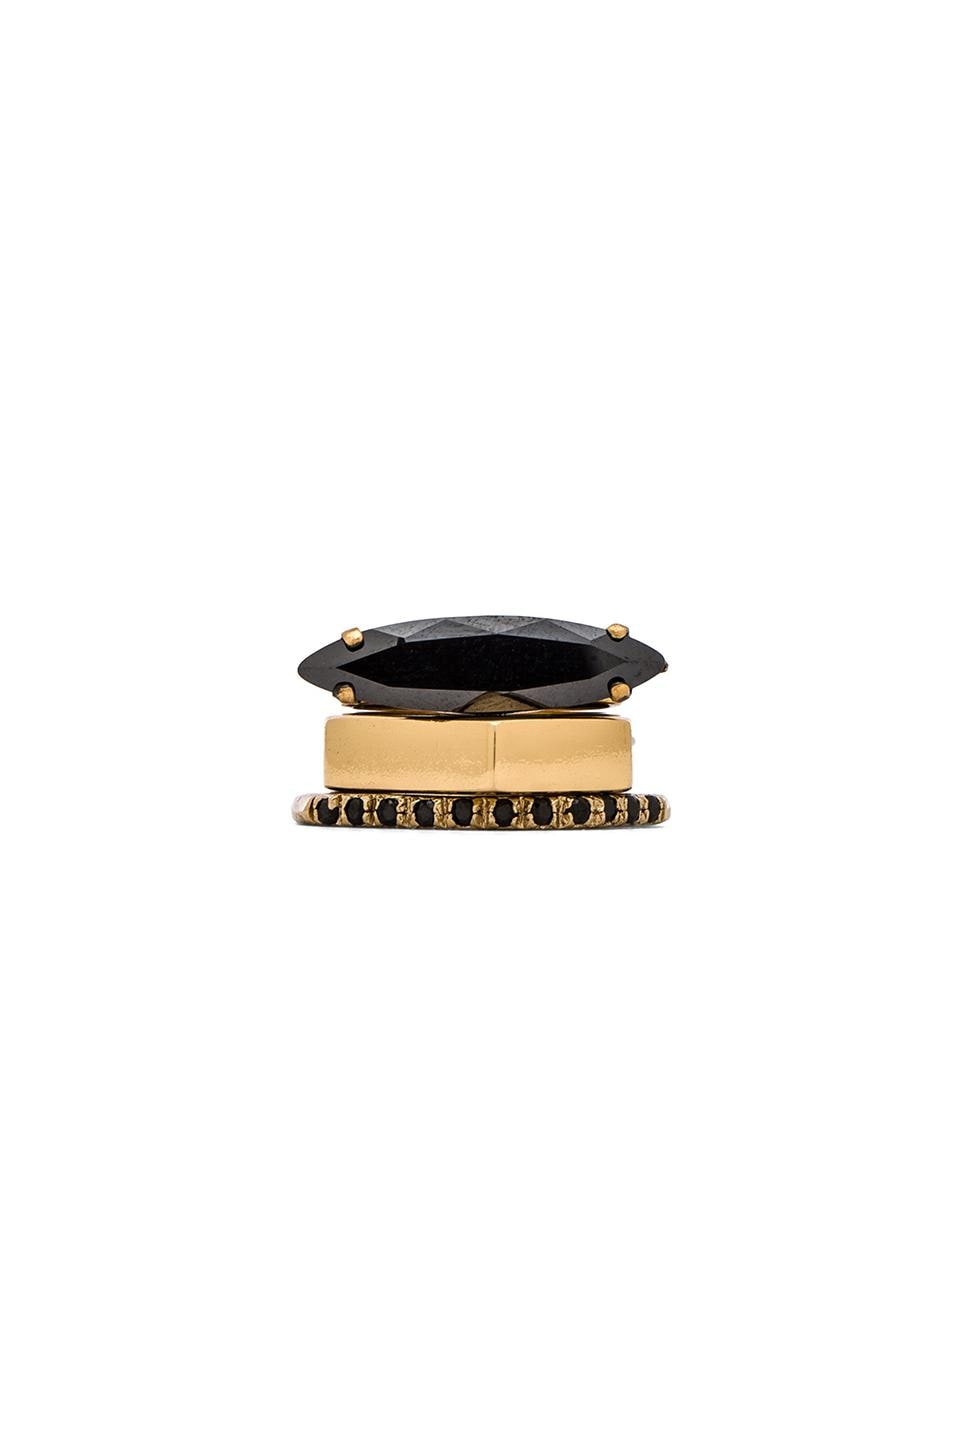 Iosselliani Ring in Gold & Black